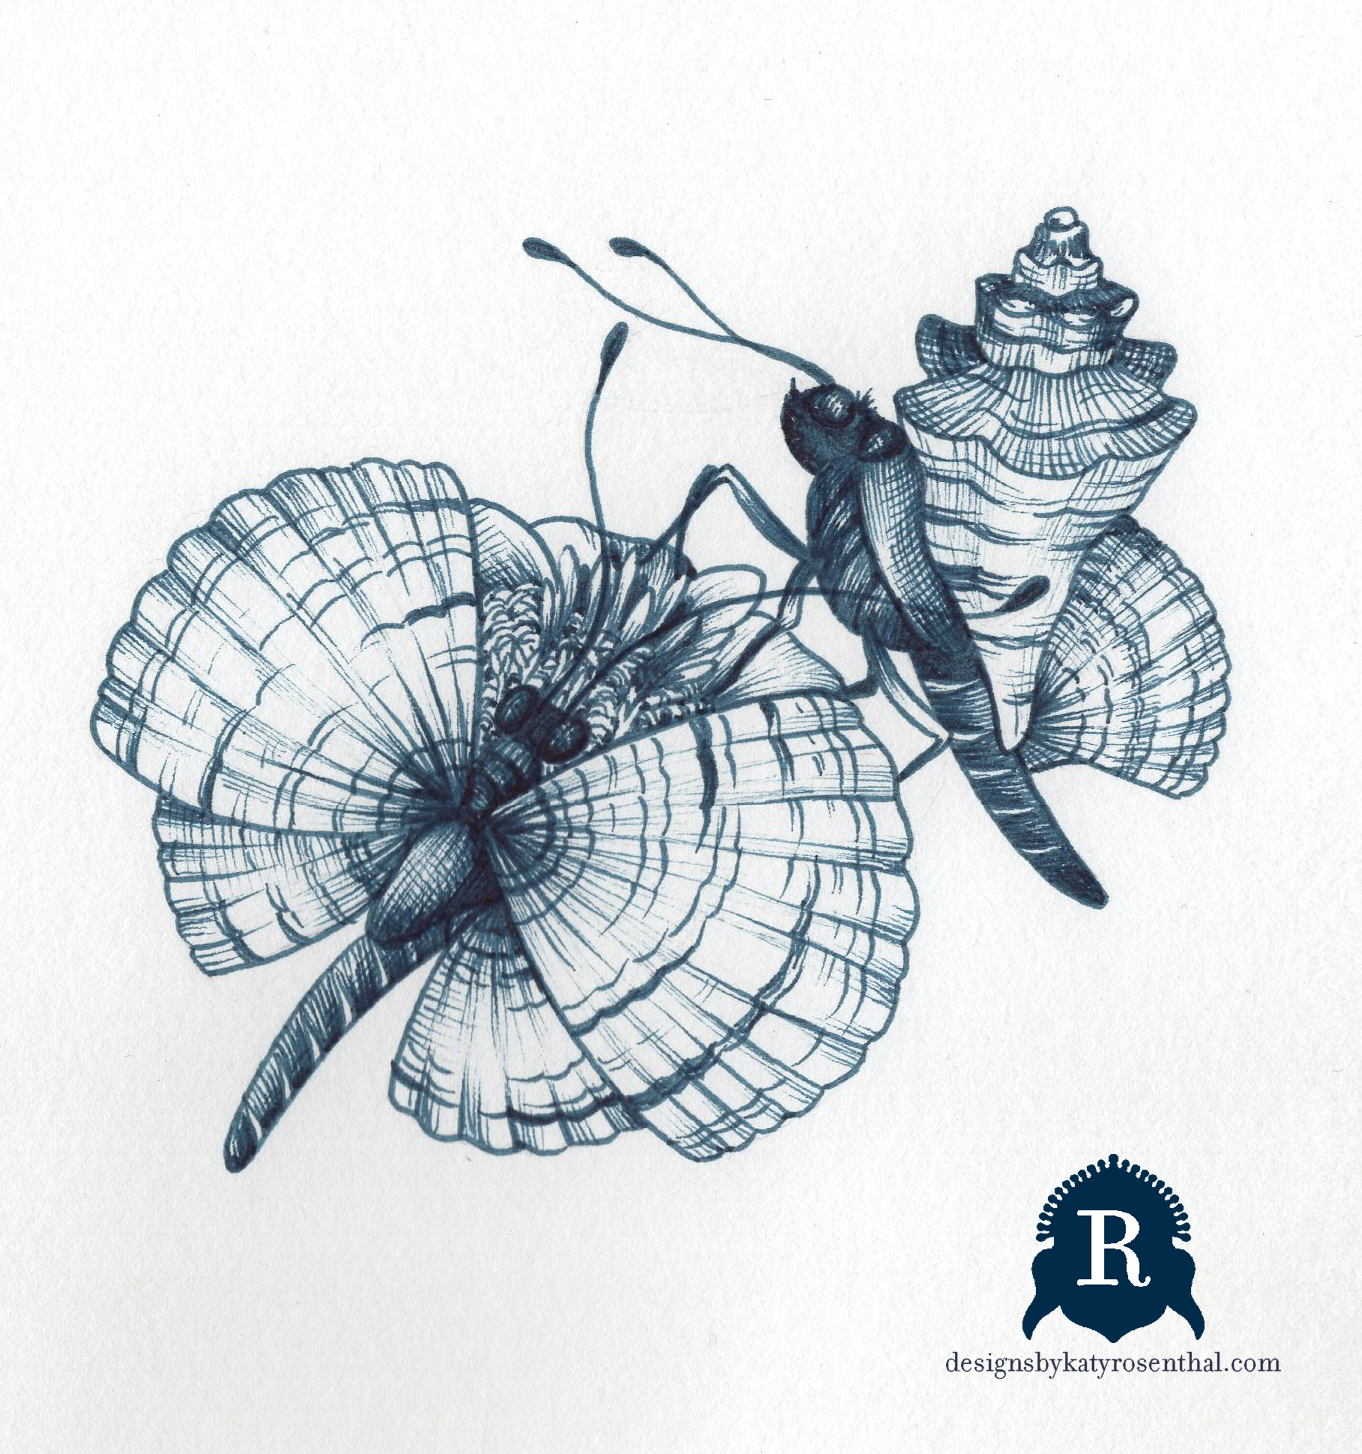 """The original drawing for my invented creature, """"Nymra,"""" which are essentially butterflies whose wings are composed of seashells."""